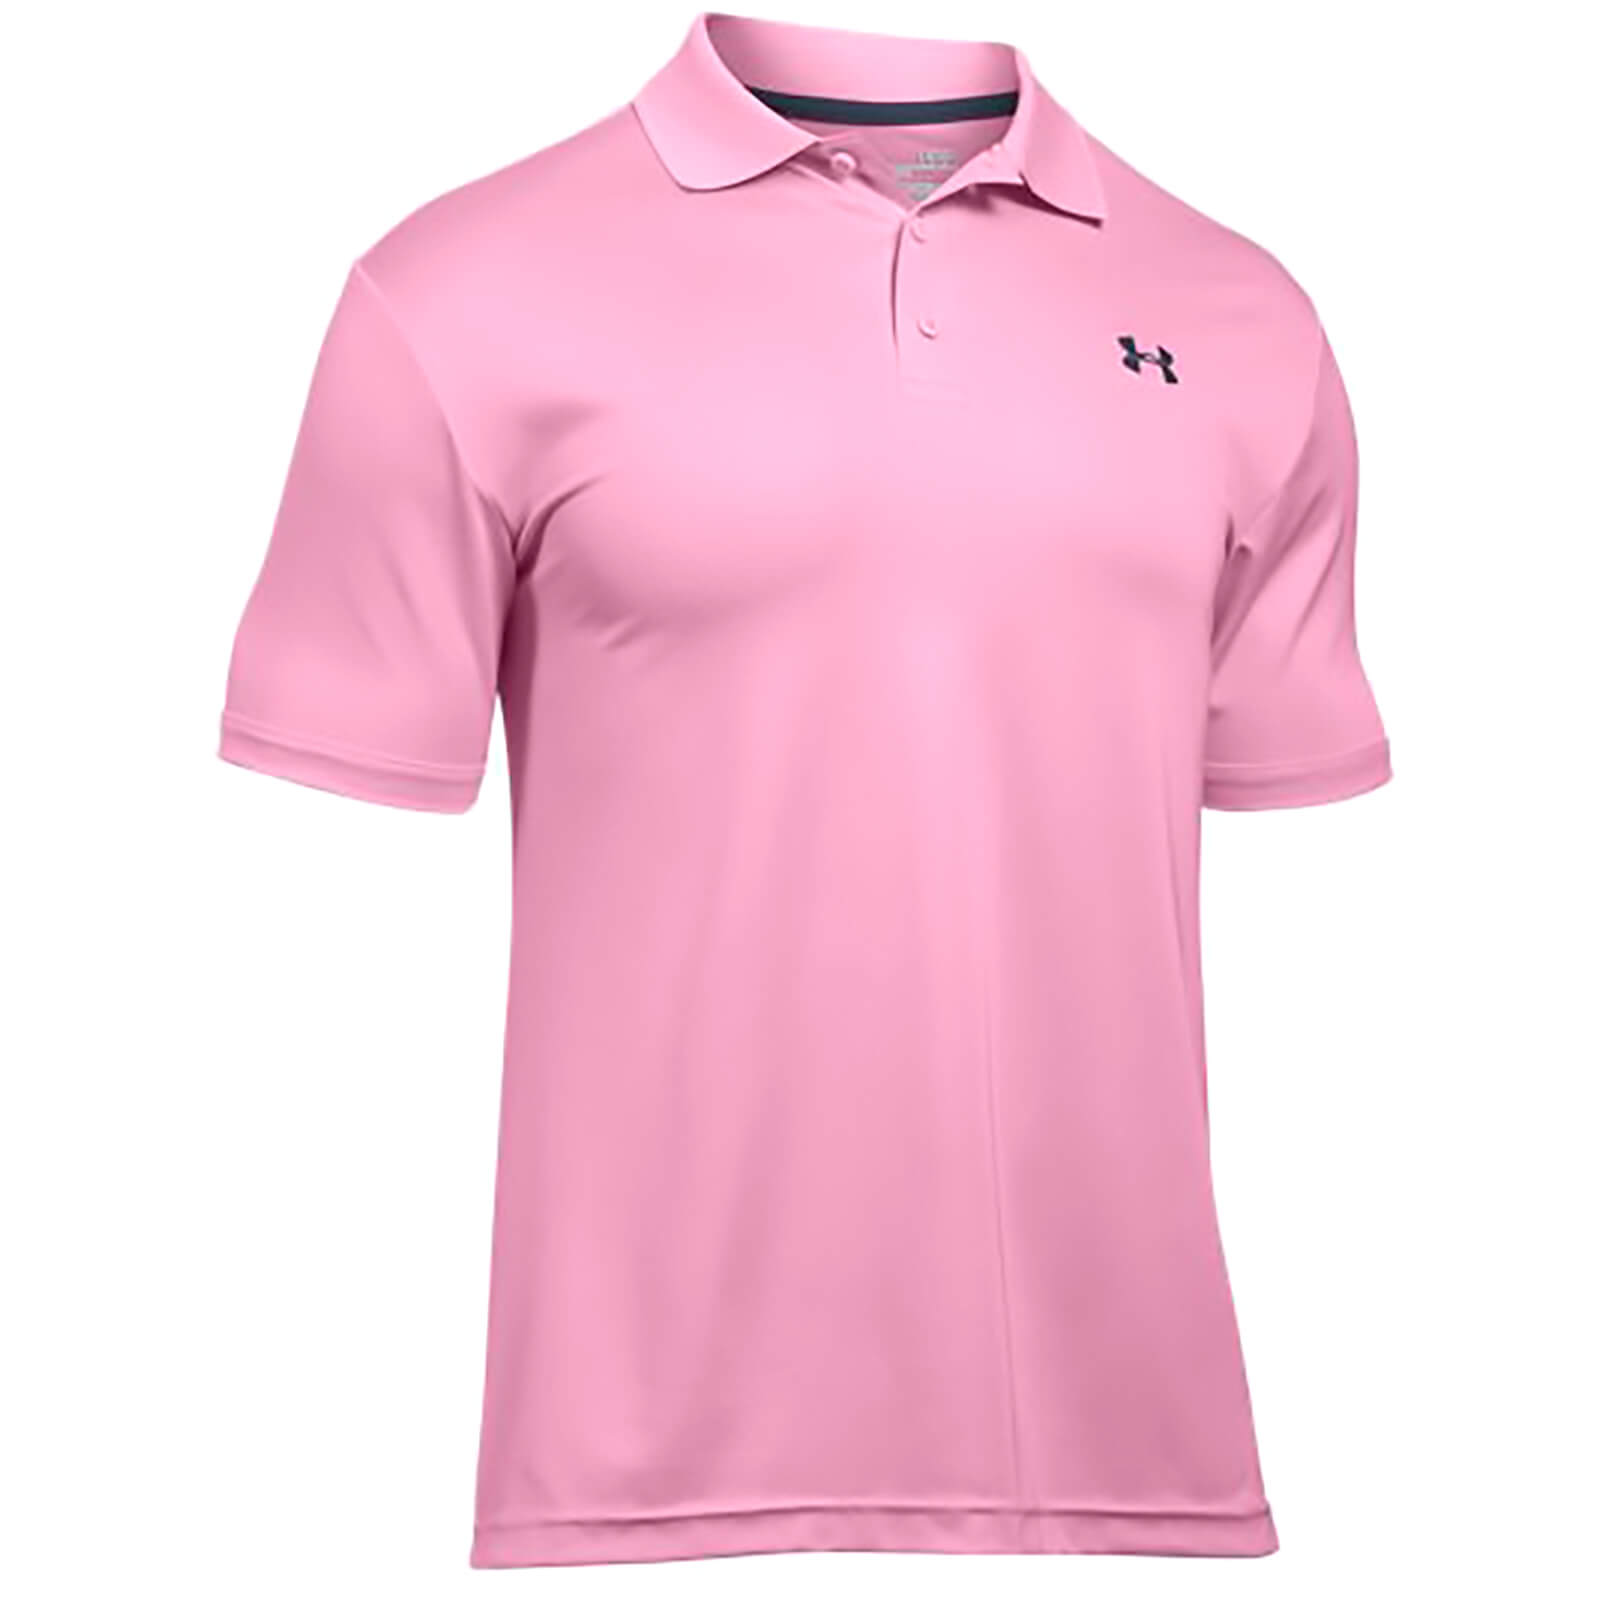 5cb048fa Under Armour Men's Performance Polo Shirt 2.0 - True Pink